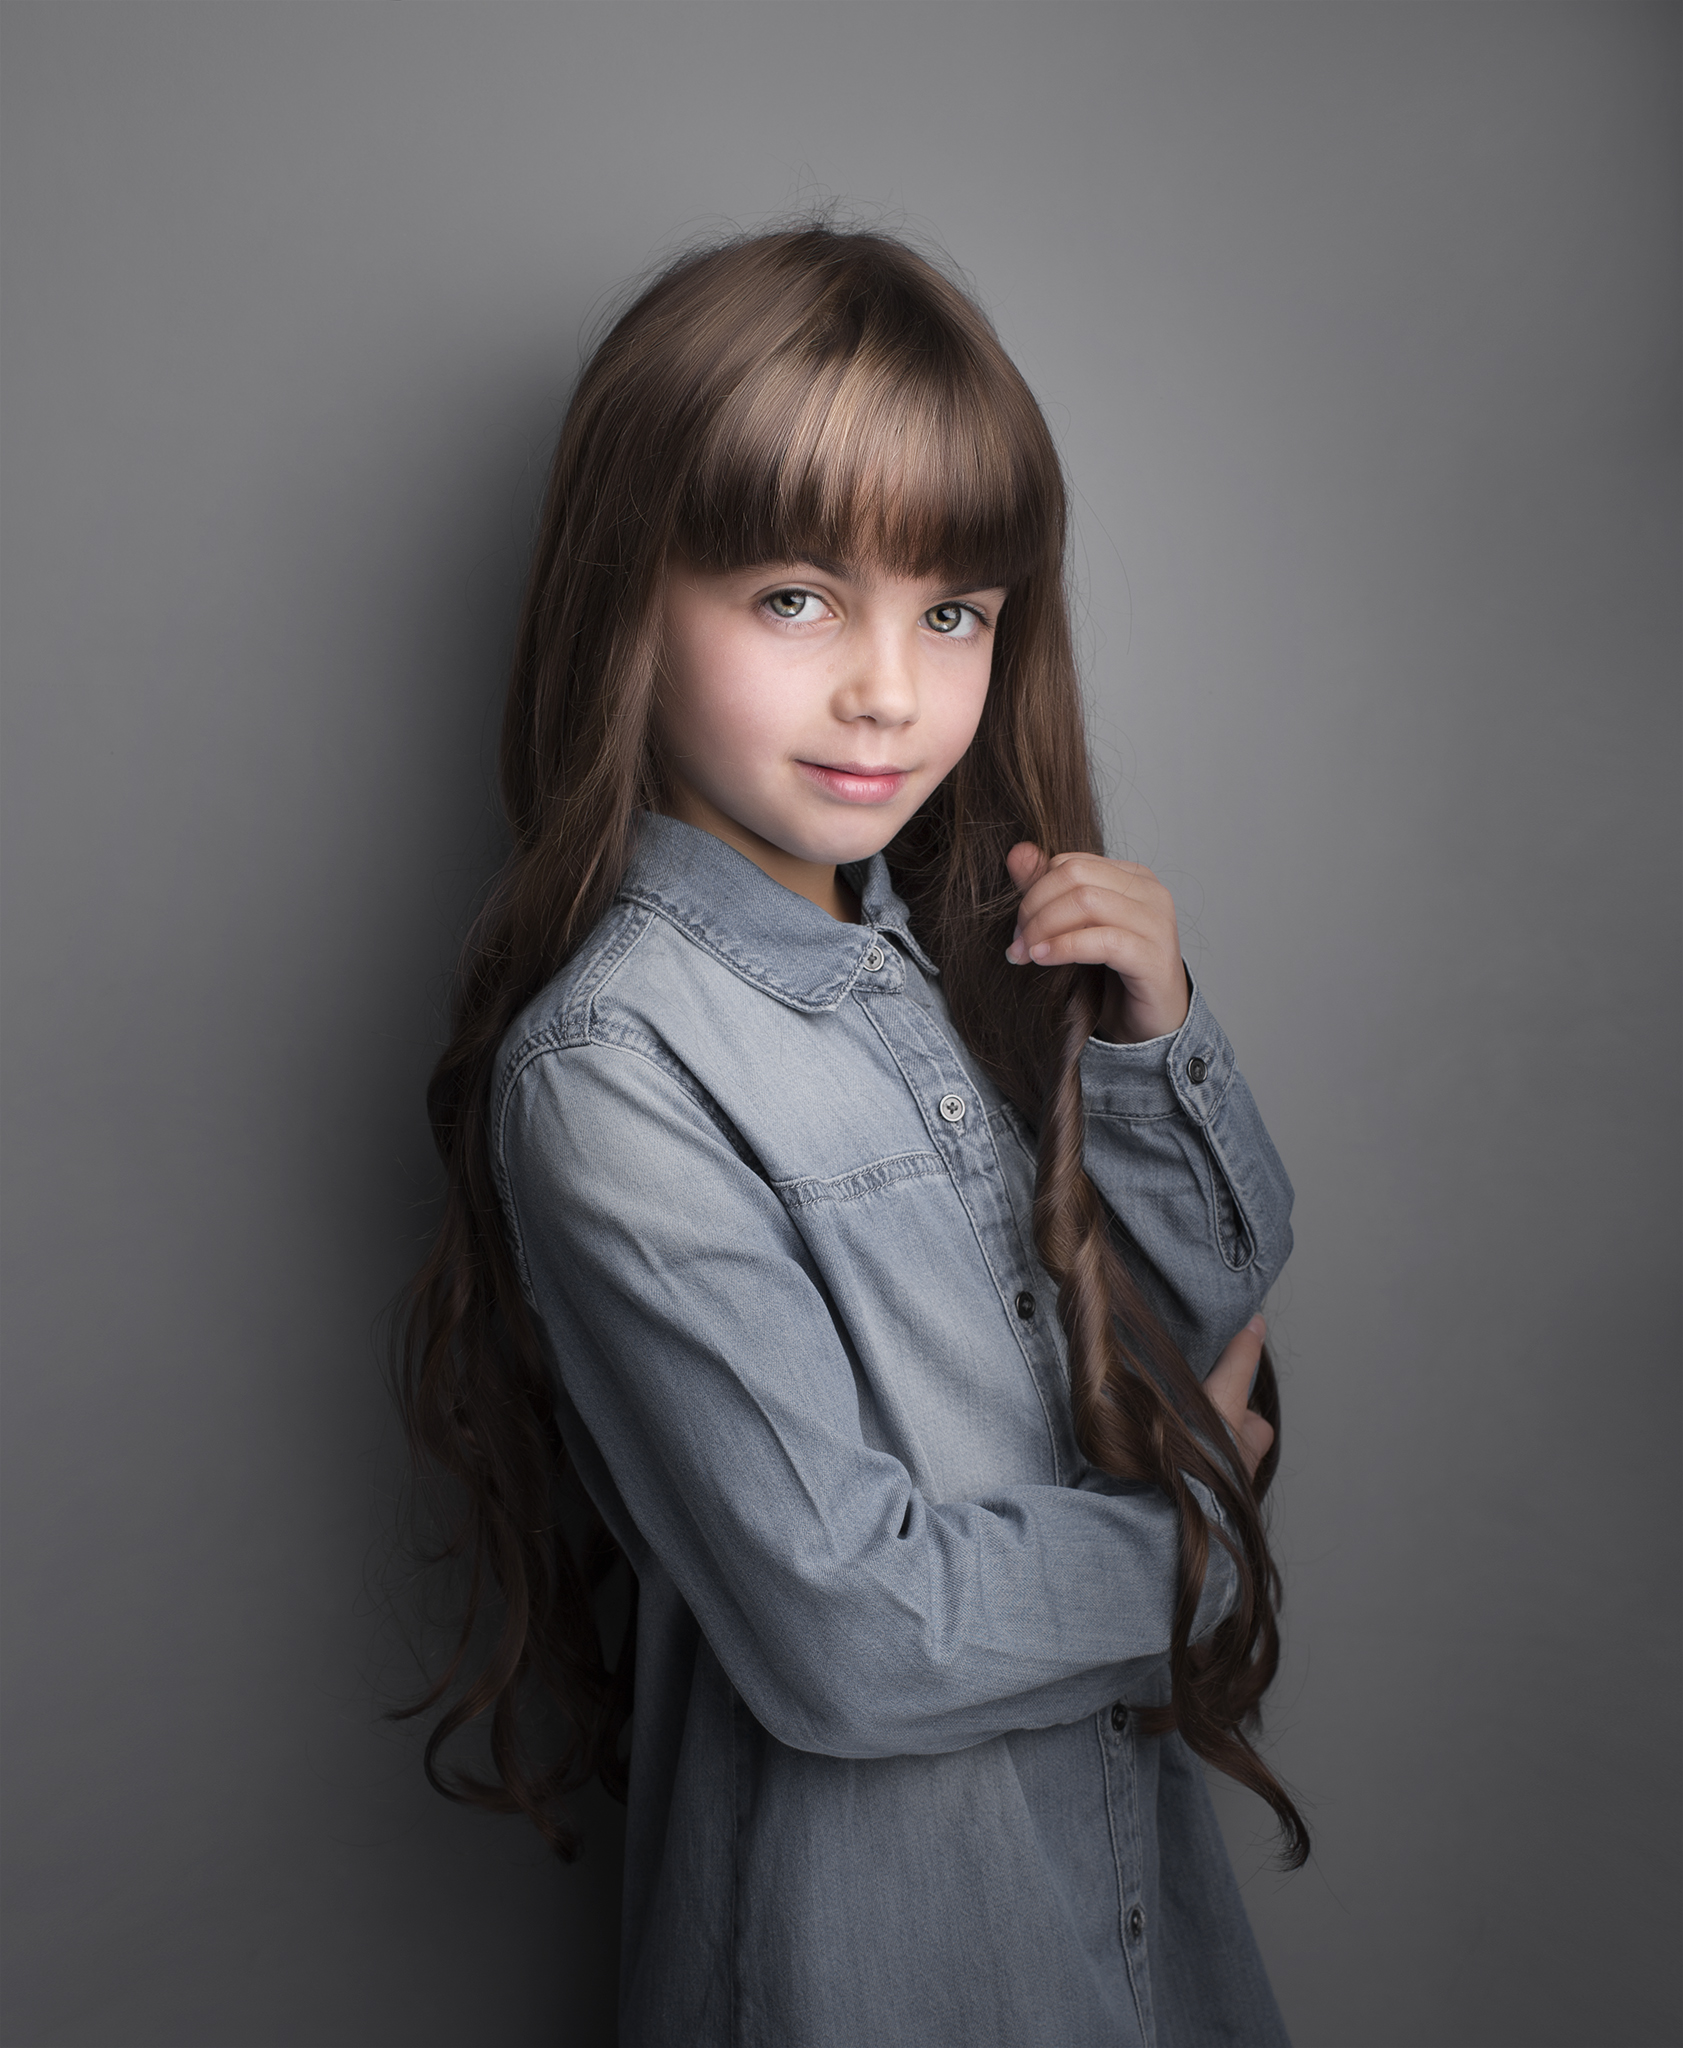 elizabethgphotography_fineart_kingslangley_london_hertfordshire_portrait_childrens_chloe_3.jpg